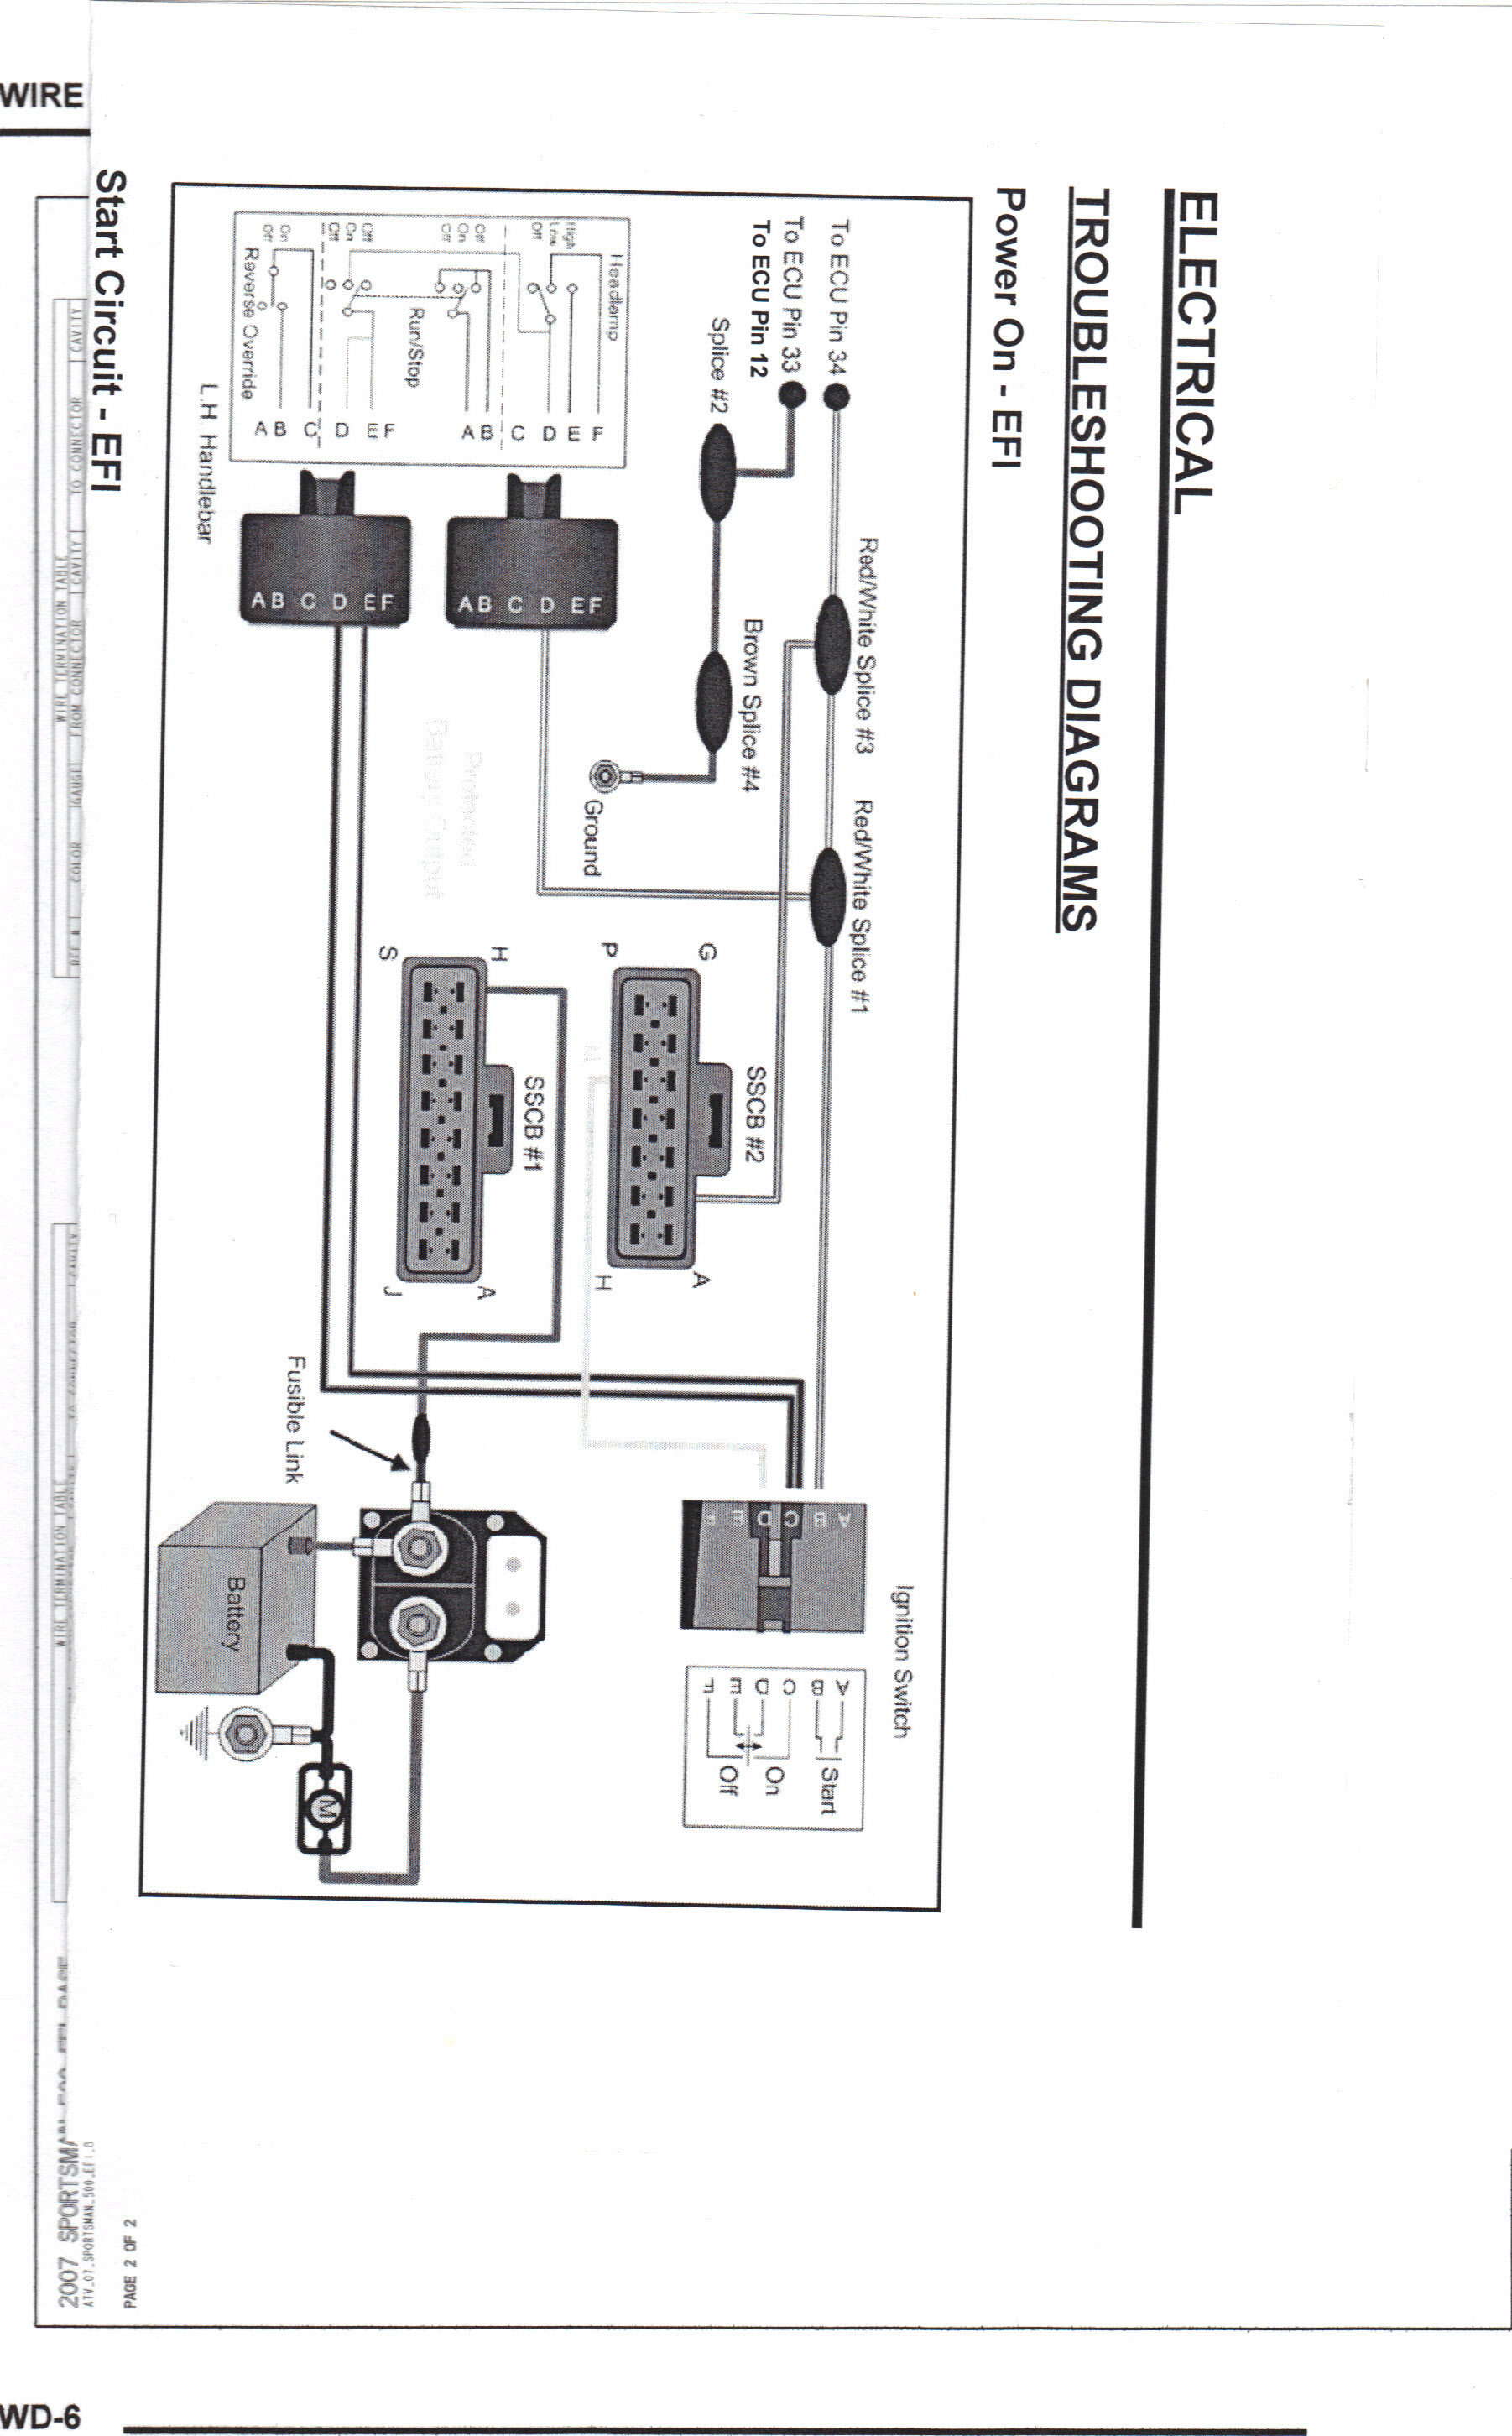 hight resolution of 2004 polaris 500 ho wiring diagram trusted wiring diagram 2011 polaris 500 sportsman key diagram wiring 2004 polaris ranger 6x6